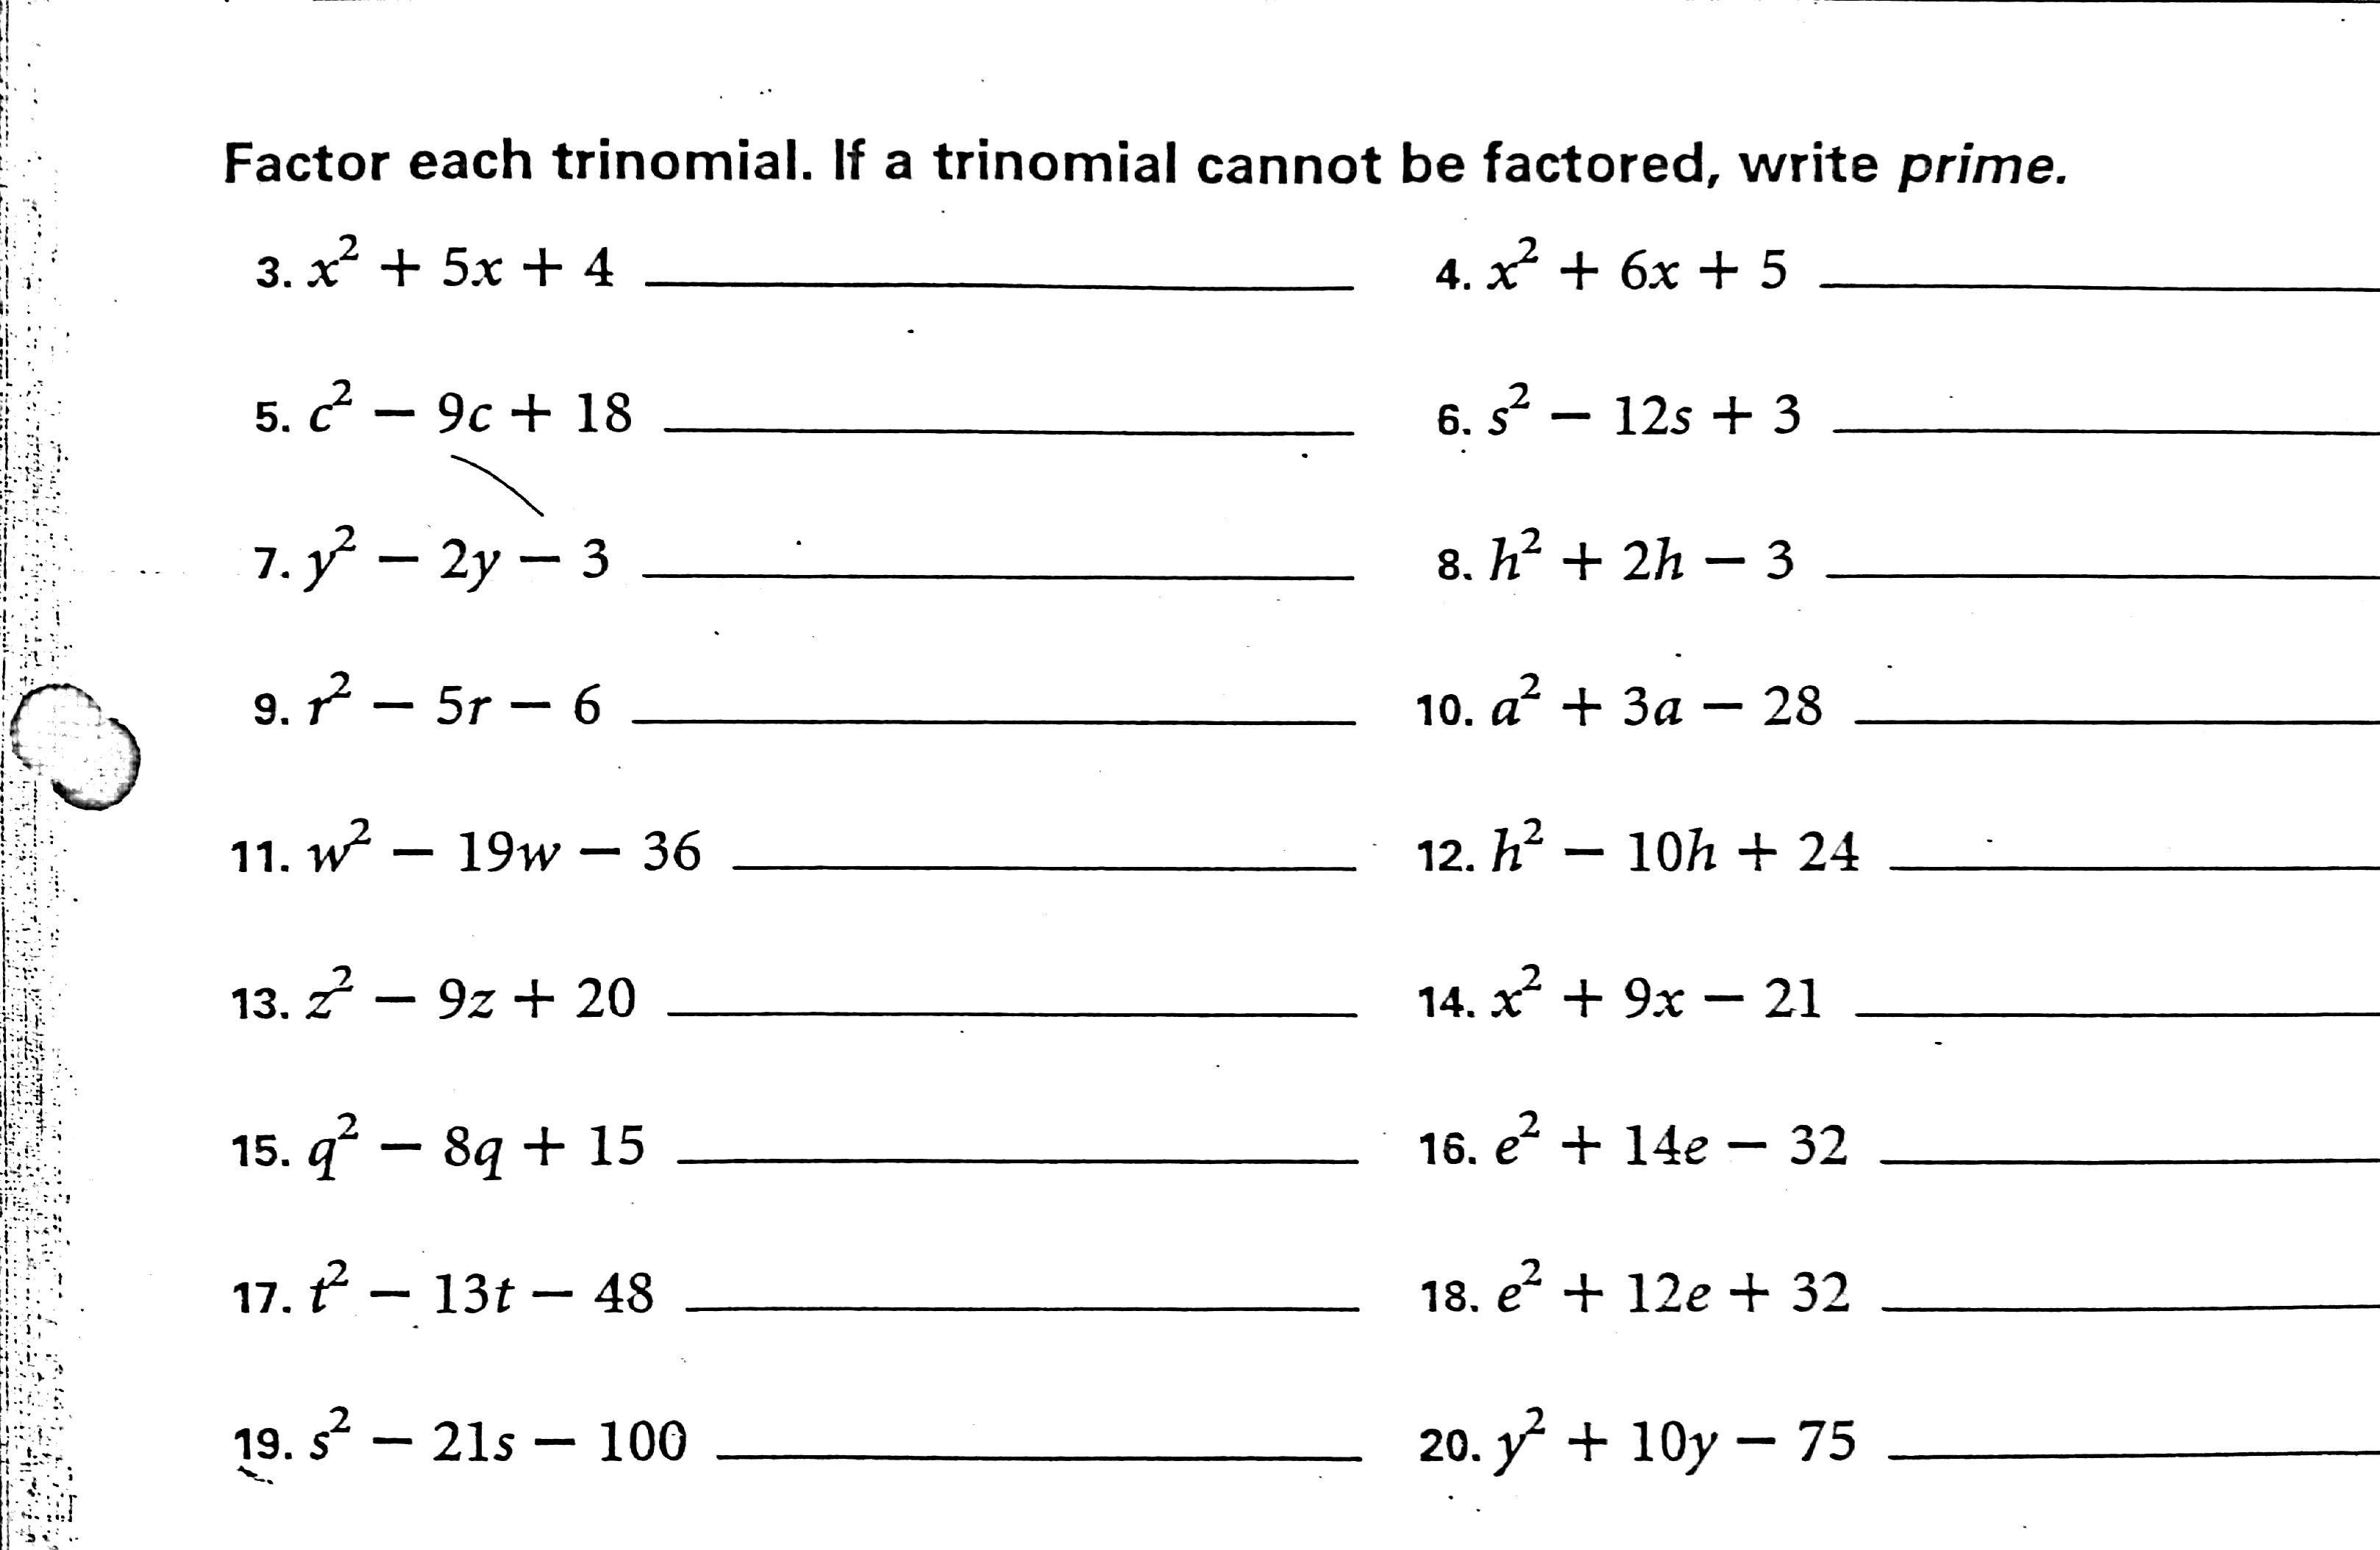 Proatmealus  Pleasant Factoring Worksheet  Delwfgcom With Excellent Factoring Polynomials Practice Worksheet With Answers Coterraneo With Archaic Mole Ratios And Mole To Mole Conversions Worksheet Answers Also Fraction Multiplication Worksheets In Addition Pearl Harbor Worksheets And Motion And Speed Worksheet As Well As Math For St Graders Worksheets Additionally Free Algebra  Worksheets From Delwfgcom With Proatmealus  Excellent Factoring Worksheet  Delwfgcom With Archaic Factoring Polynomials Practice Worksheet With Answers Coterraneo And Pleasant Mole Ratios And Mole To Mole Conversions Worksheet Answers Also Fraction Multiplication Worksheets In Addition Pearl Harbor Worksheets From Delwfgcom